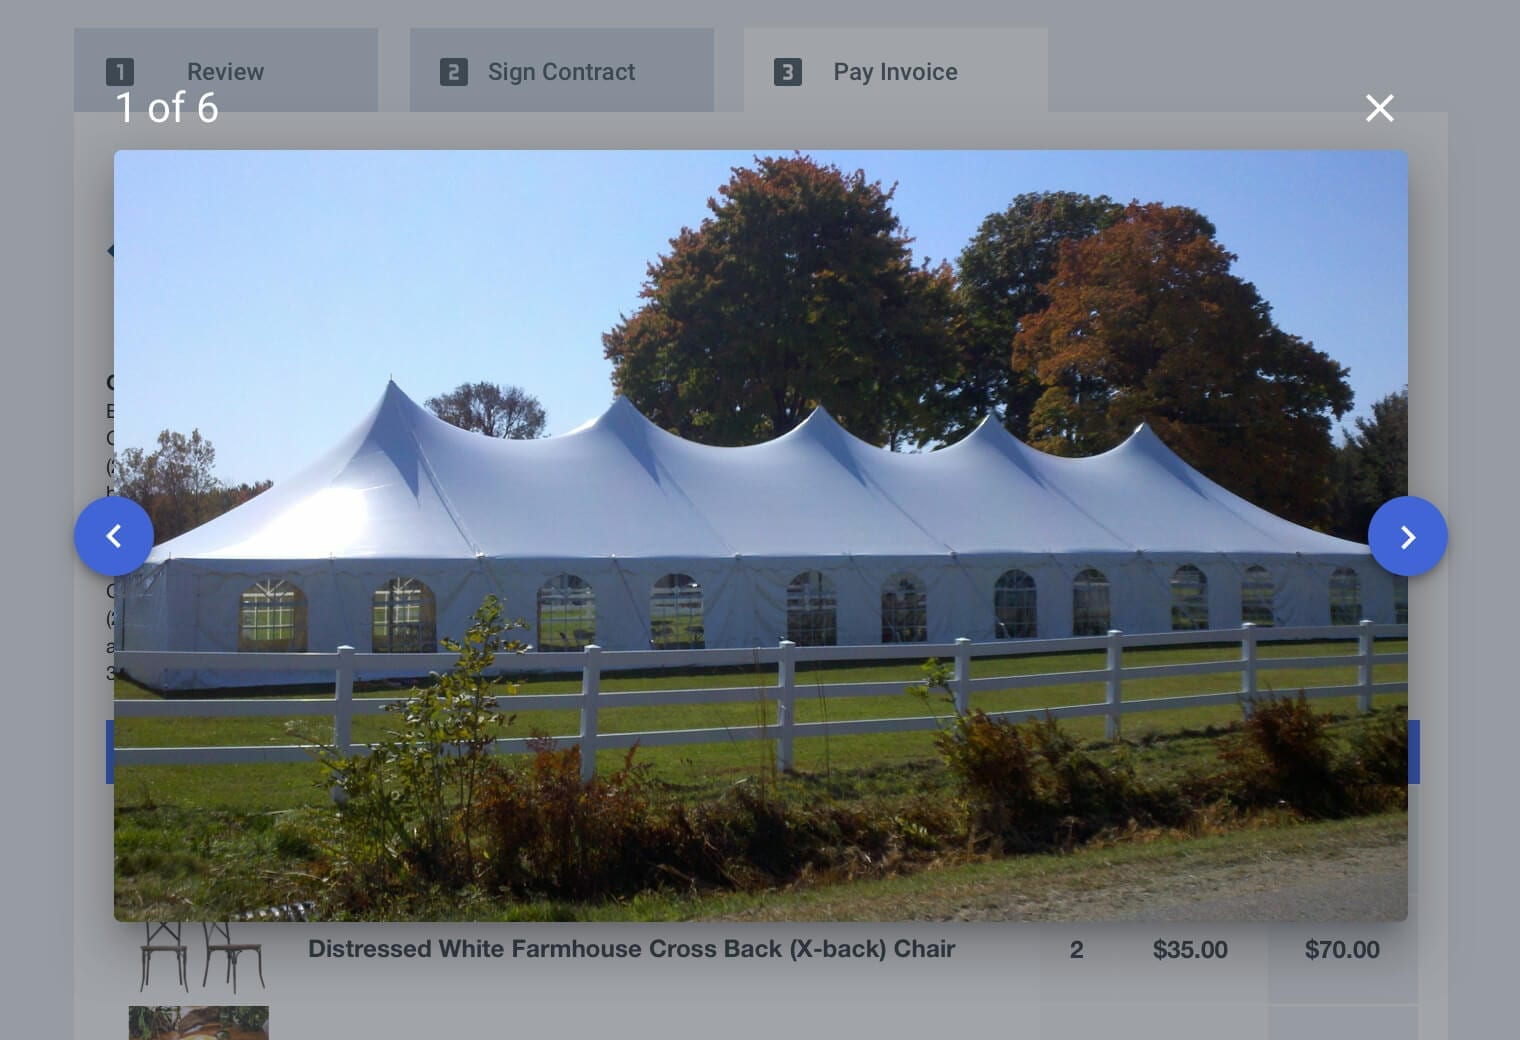 Client view of a tent contract in Goodshuffle Pro, a rental management software